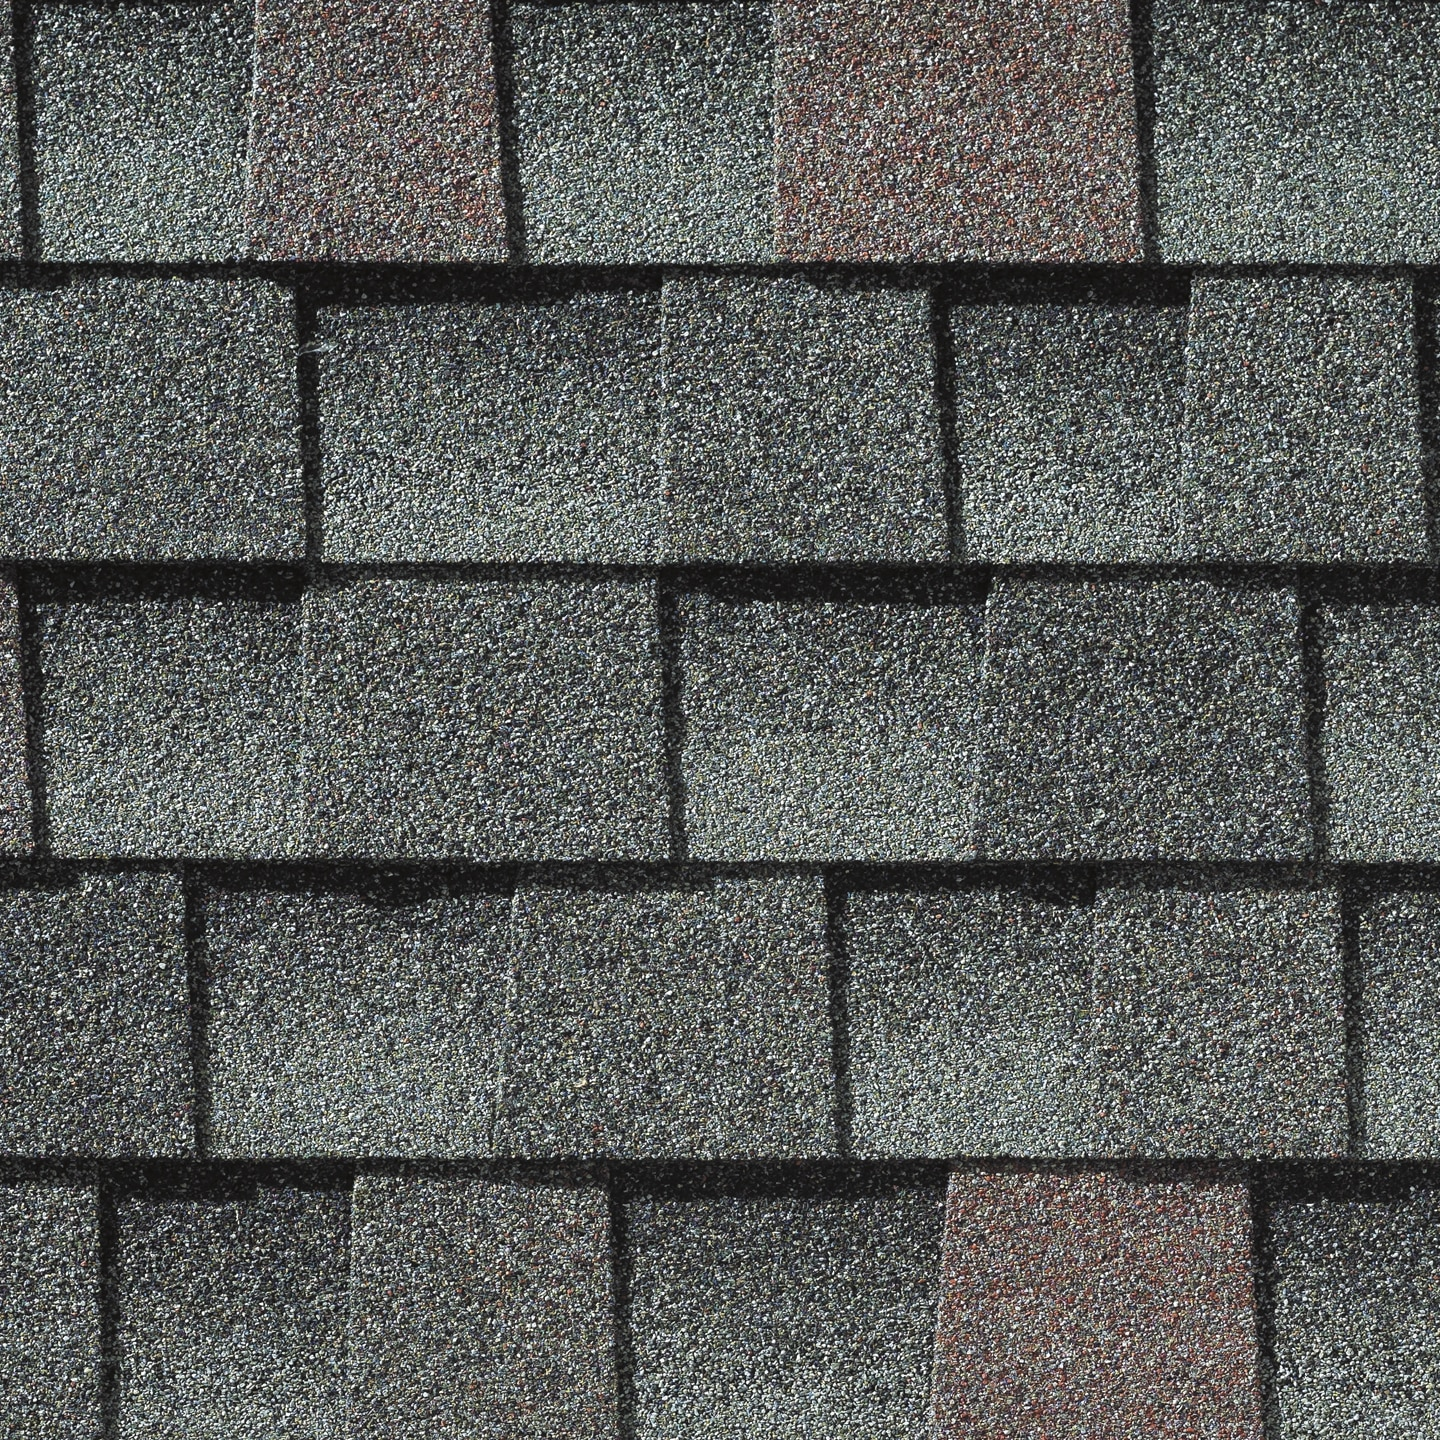 GAF Timberline HD Shingle - Wiliamsburg Slate